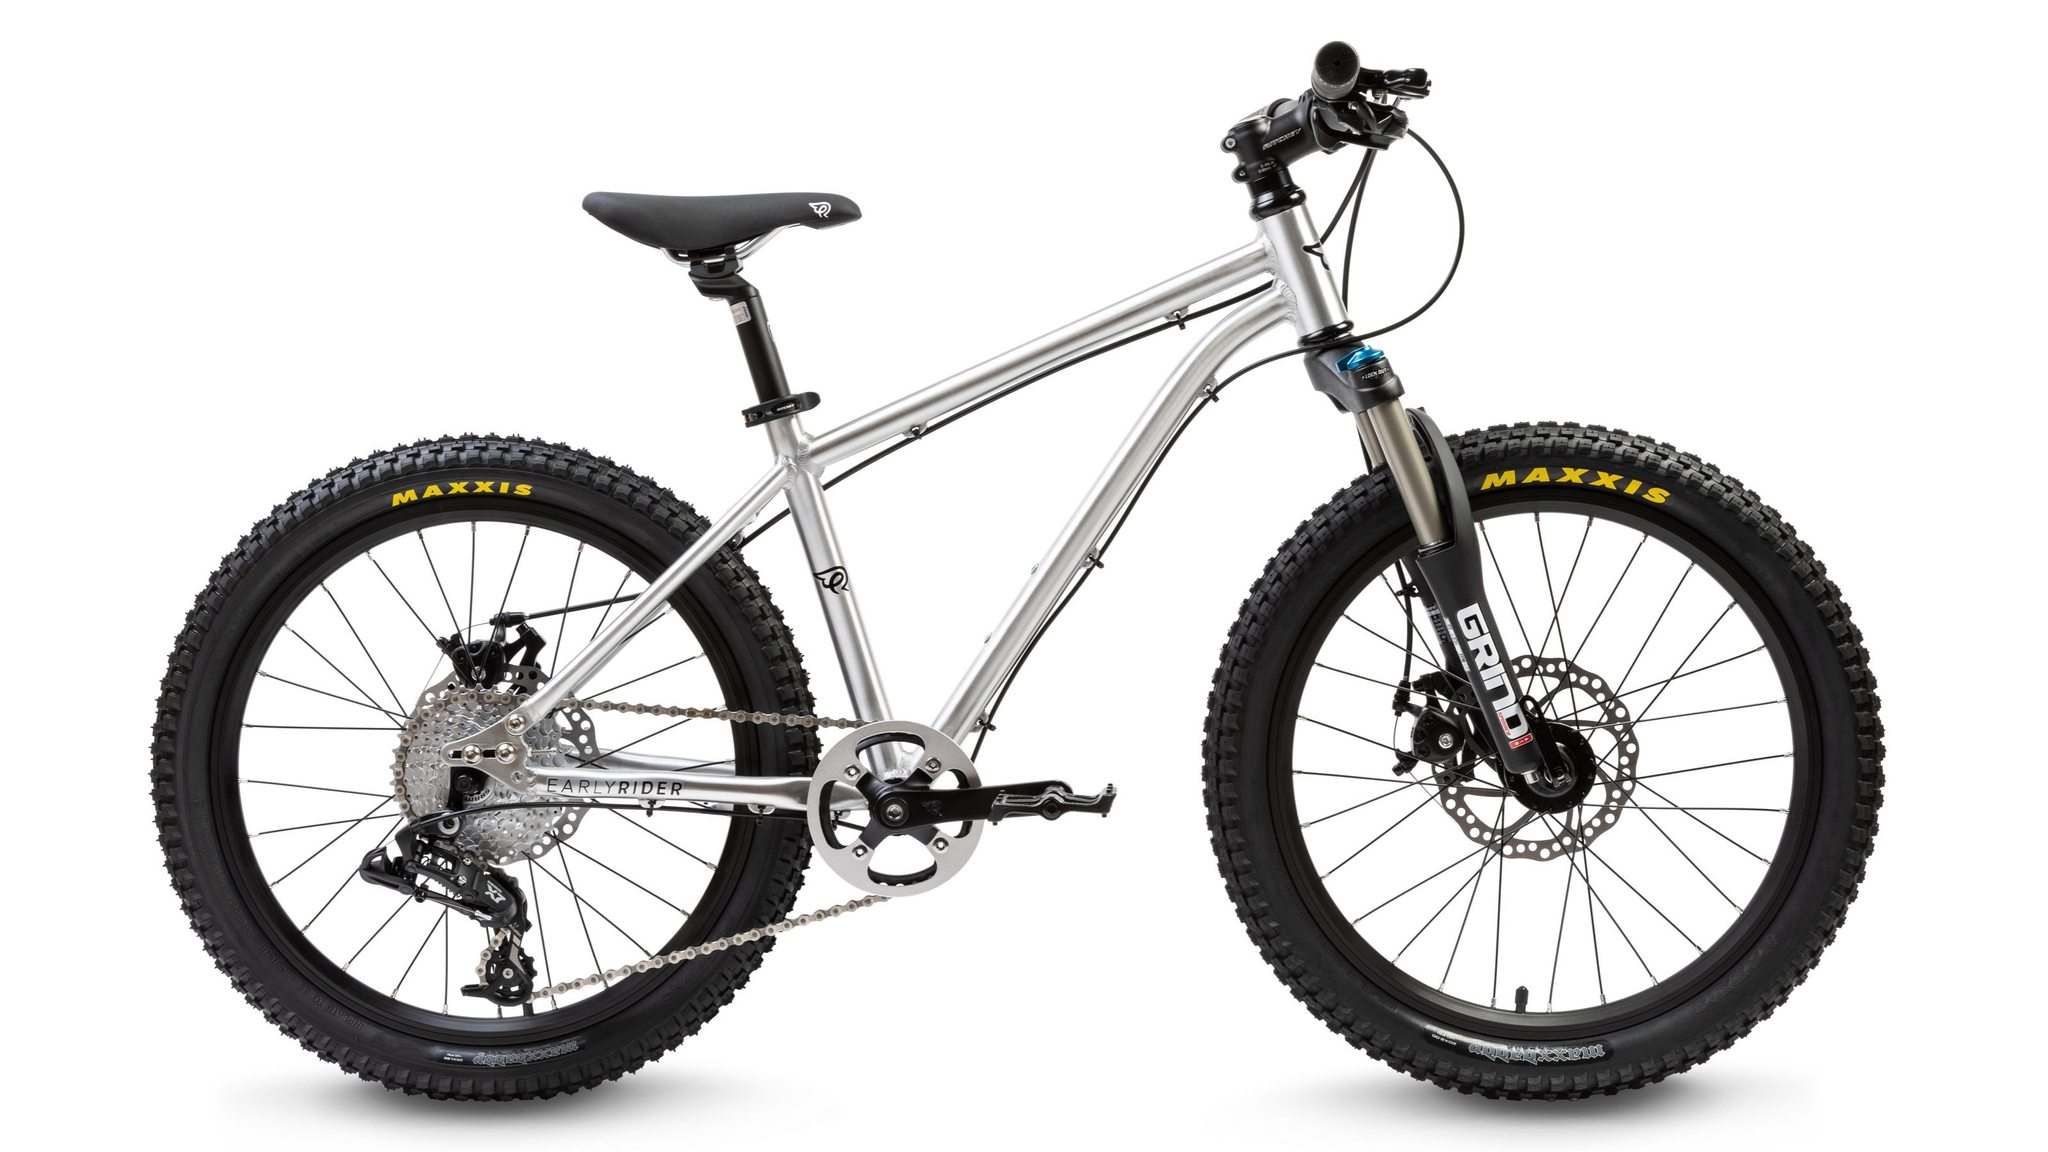 "dětské kolo Early Rider Hellion Trail 20"" Hardtail H-T20HT Kinderrad 20"" 2019 brushed aluminum"